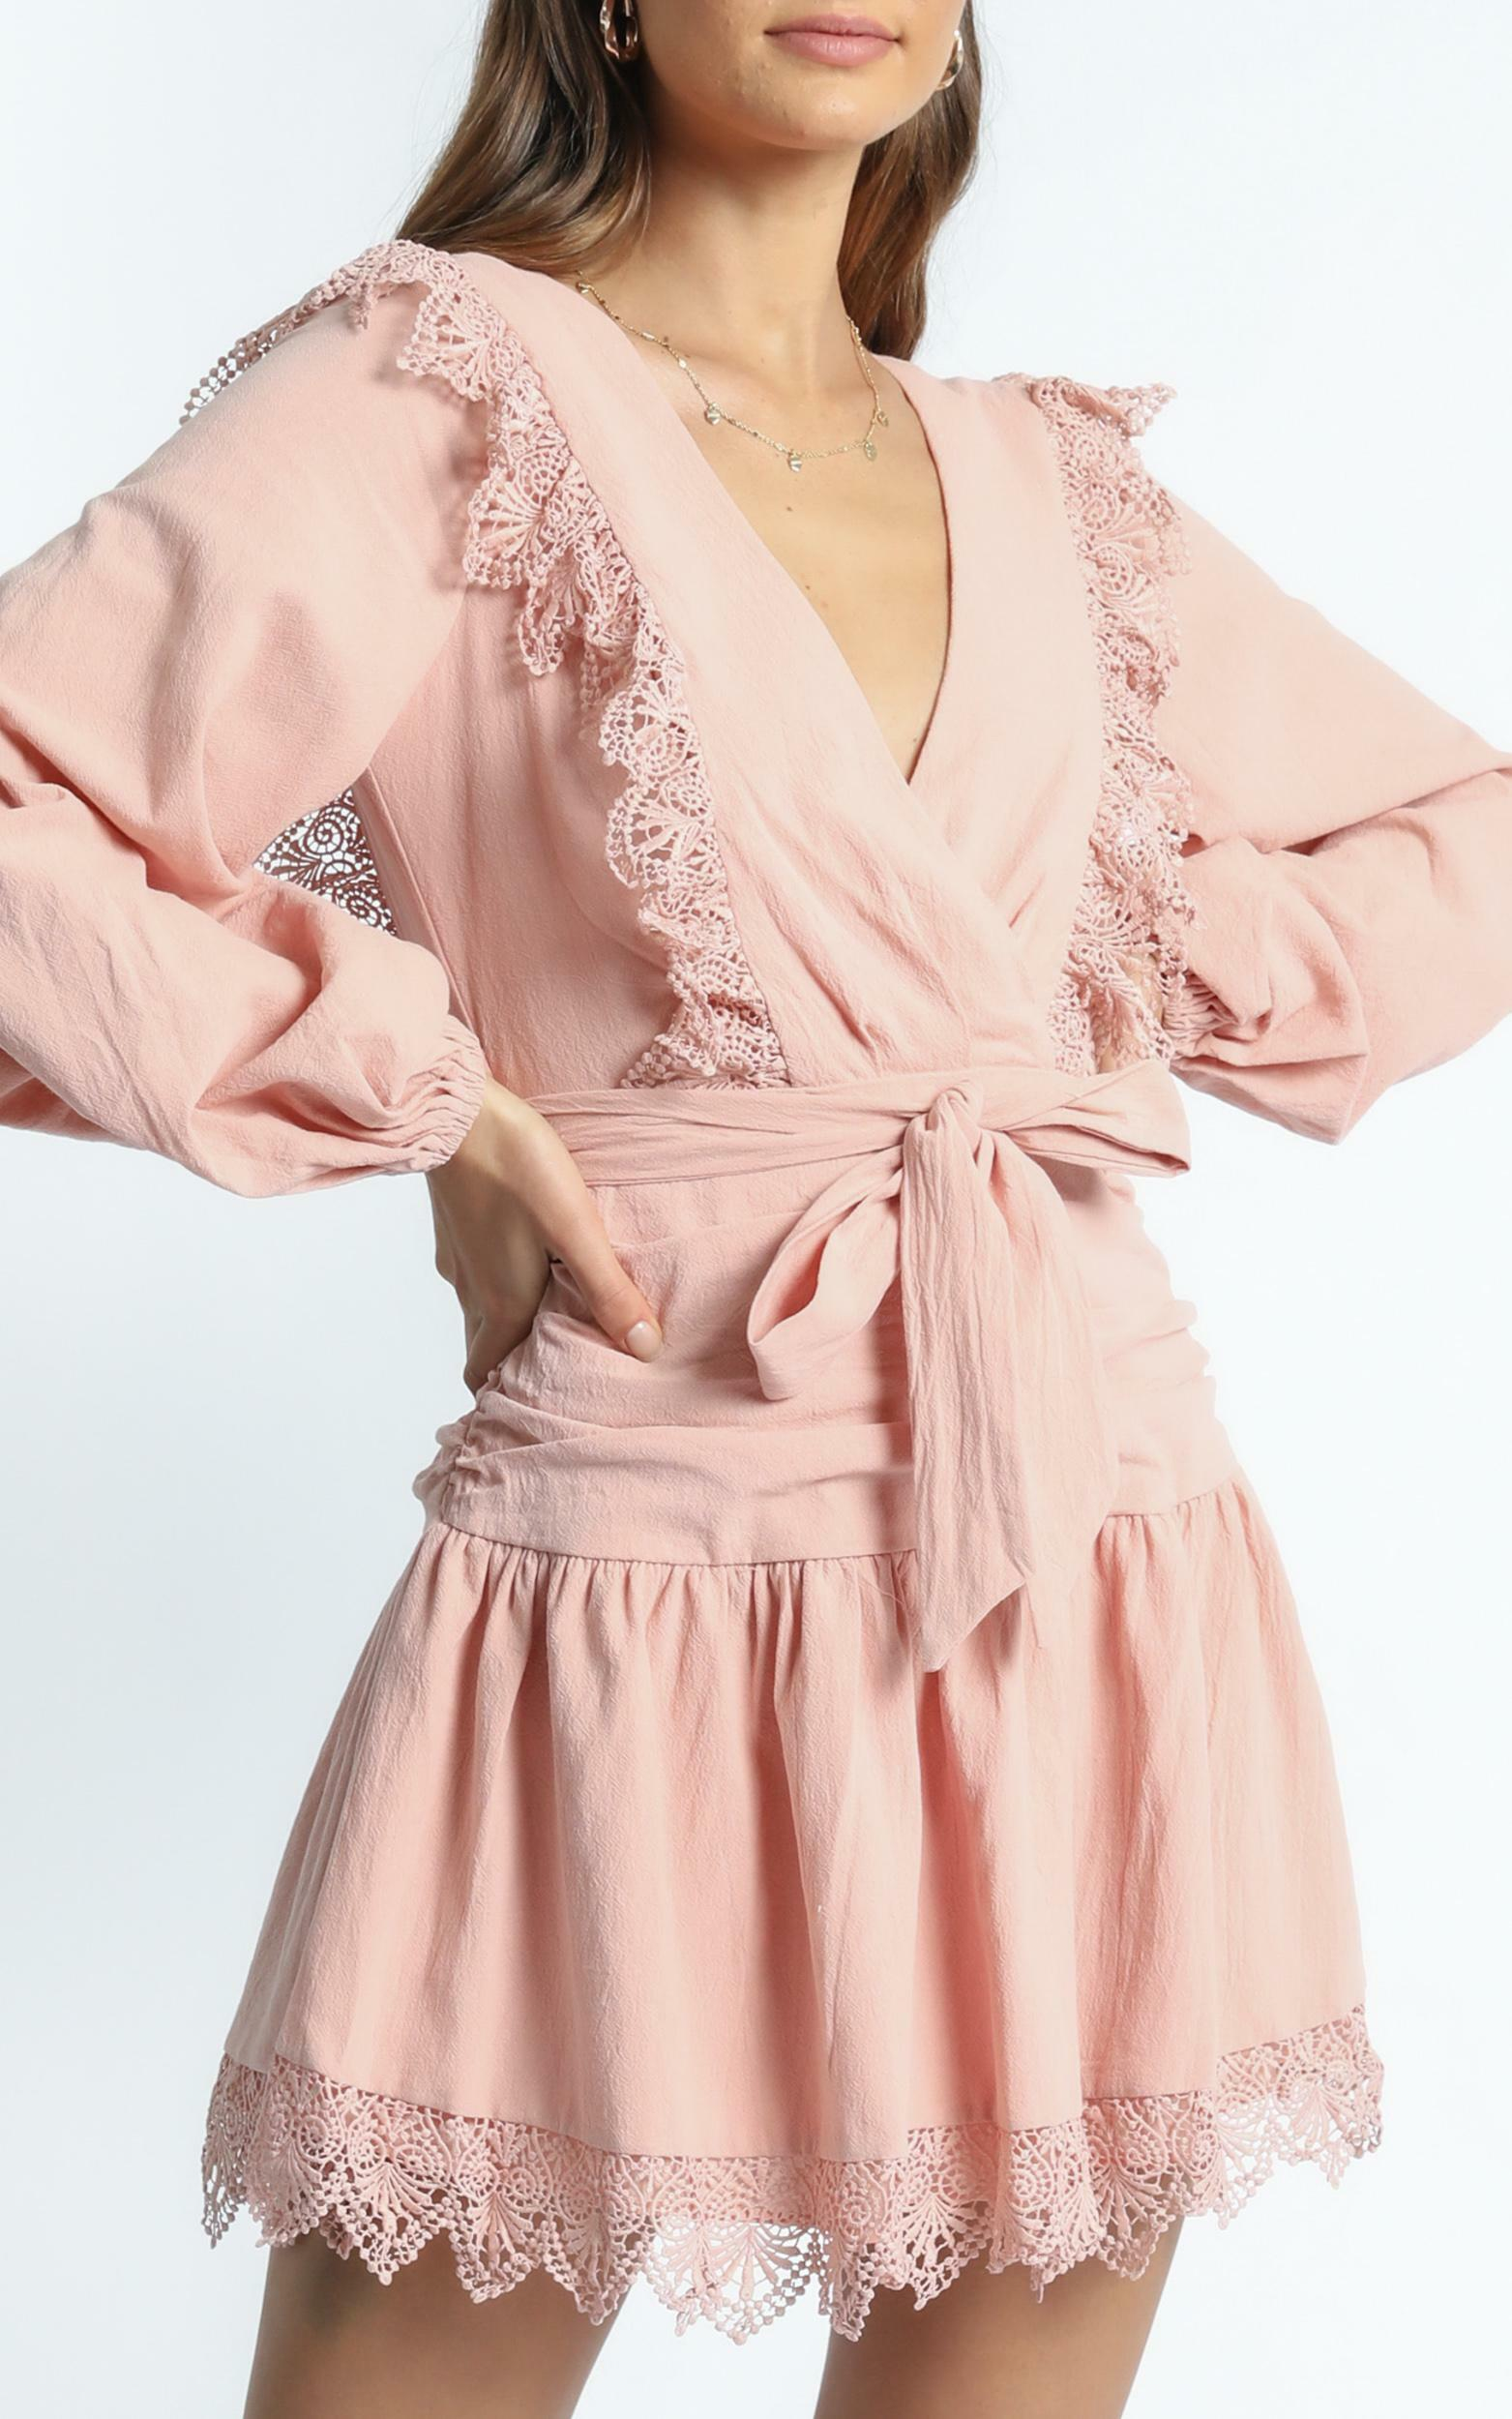 Bellevue Dress in Blush - 6 (XS), Blush, hi-res image number null